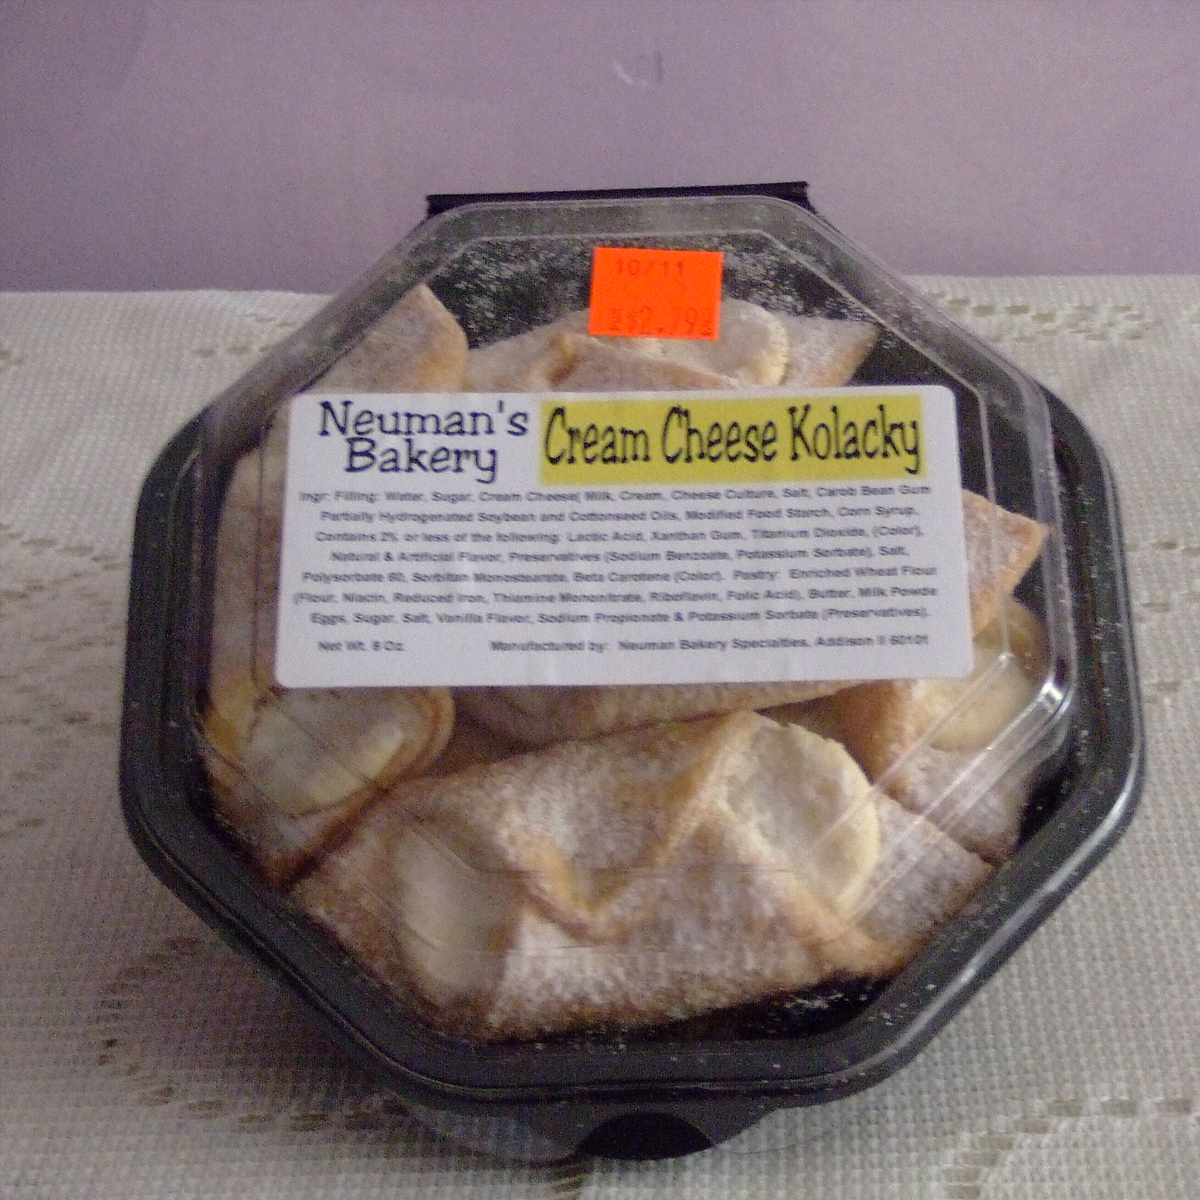 Neuman's Cream Cheese Kolacky